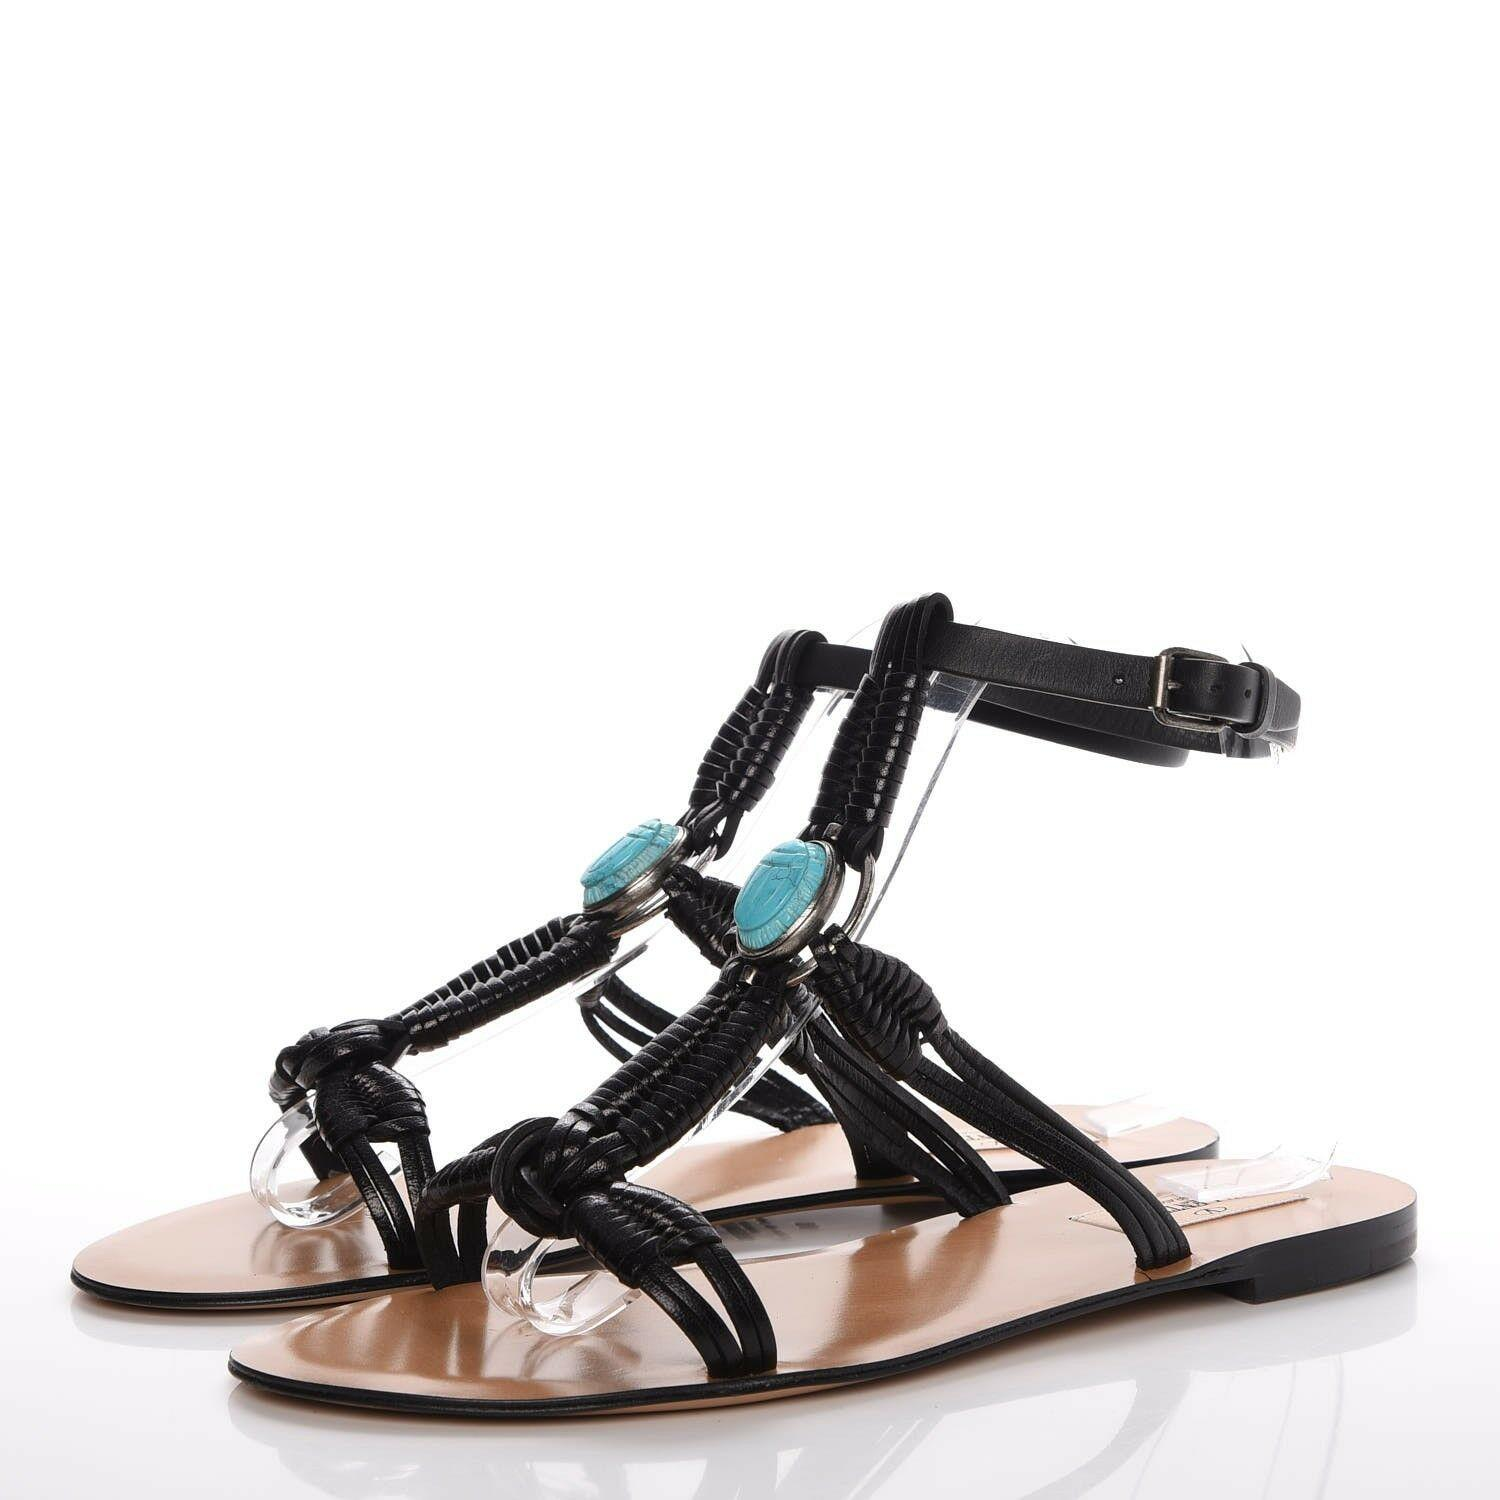 $1095 Valentino Embellished Leather Sandals Black Turquoise Shoes 39.5 Flats